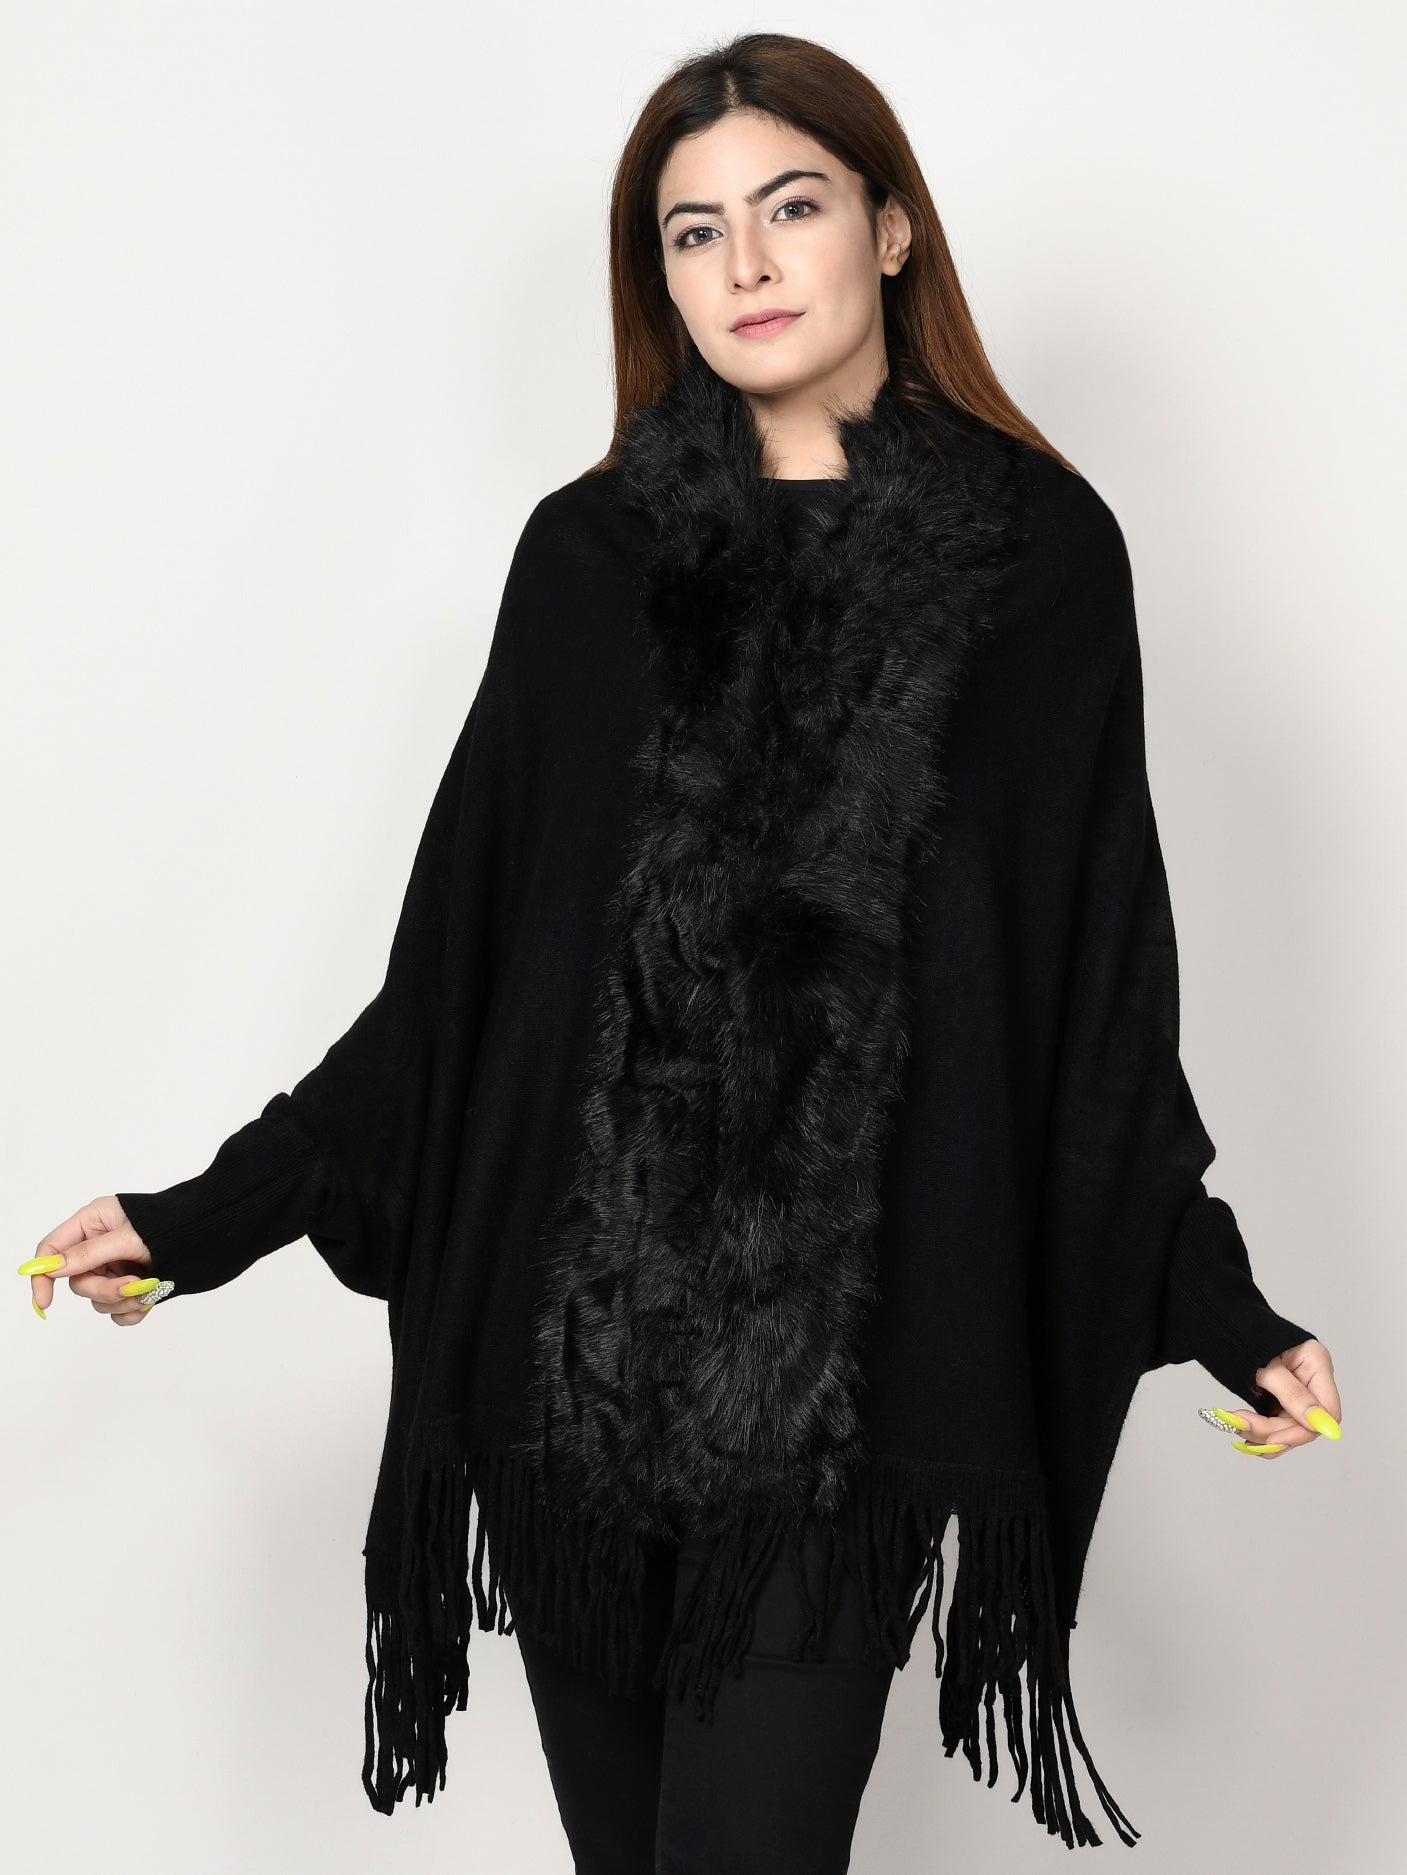 Limelight Online Shimmery Fur Poncho CPS71-FRE-BLK